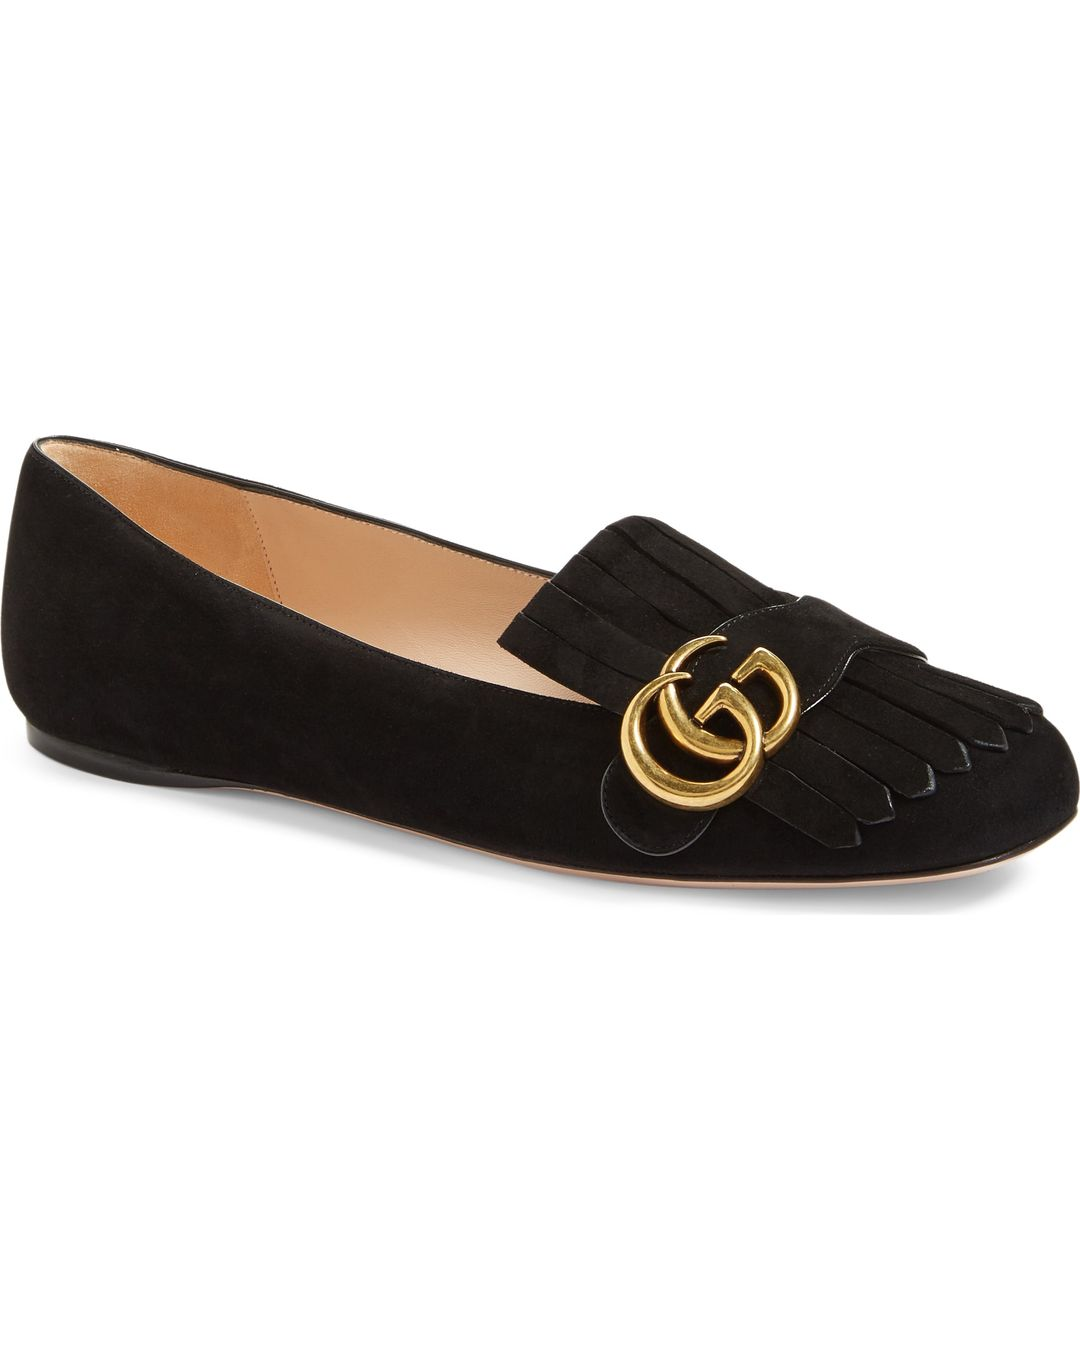 d0efa6f17 Gucci Marmont Flats Reviews and Sizing